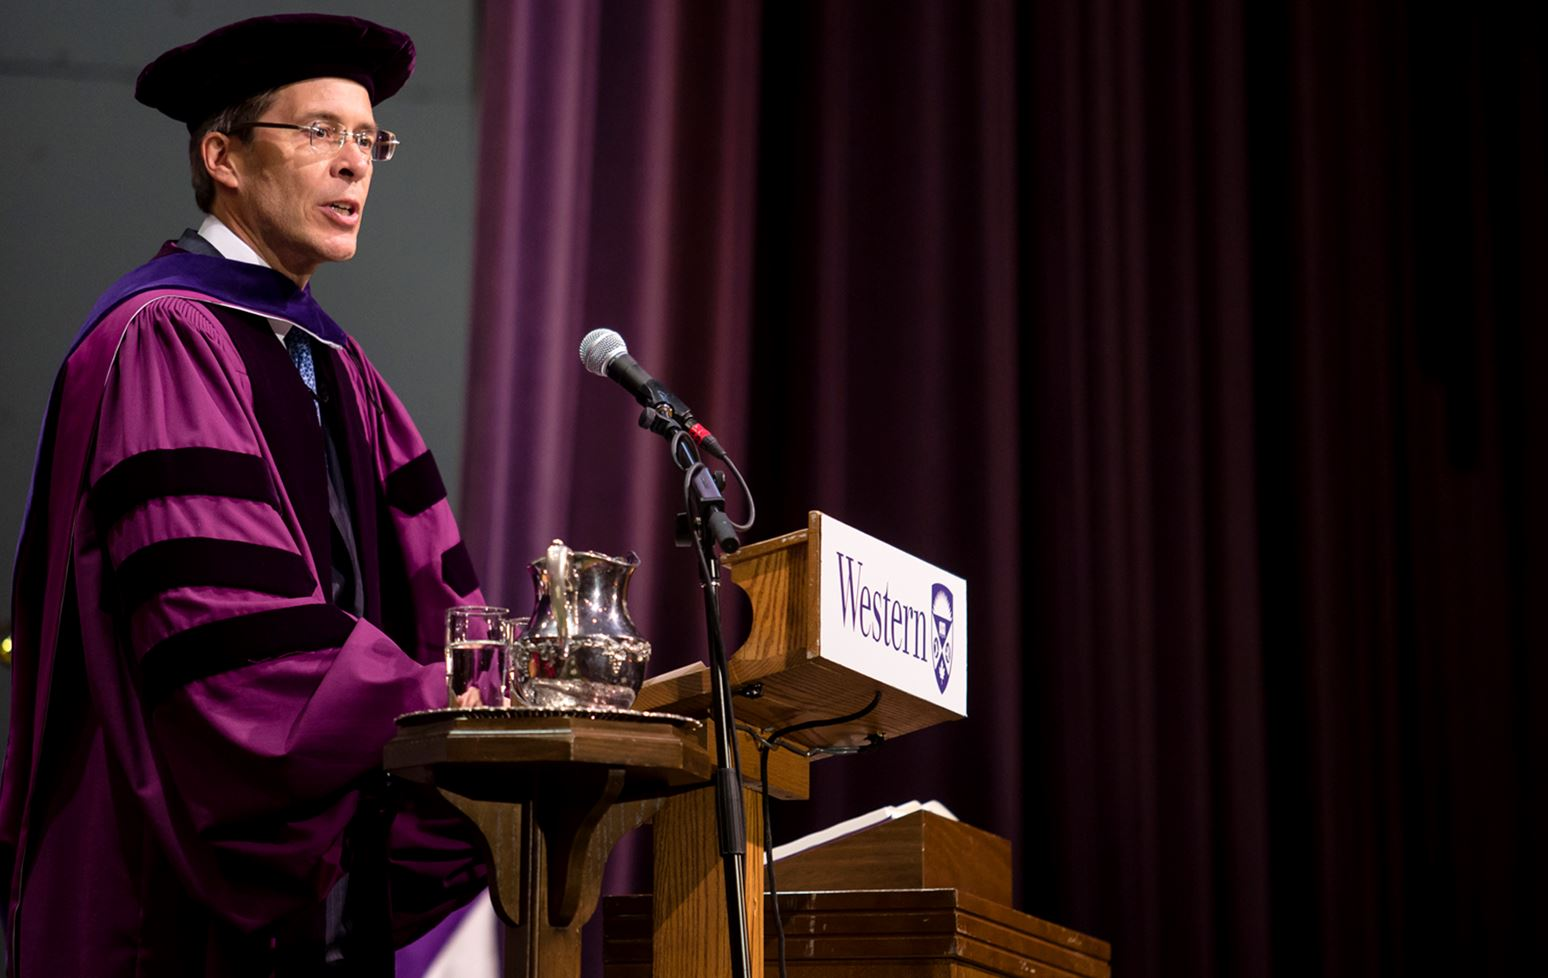 Values matter, says honorary degree recipient Jeff Orr